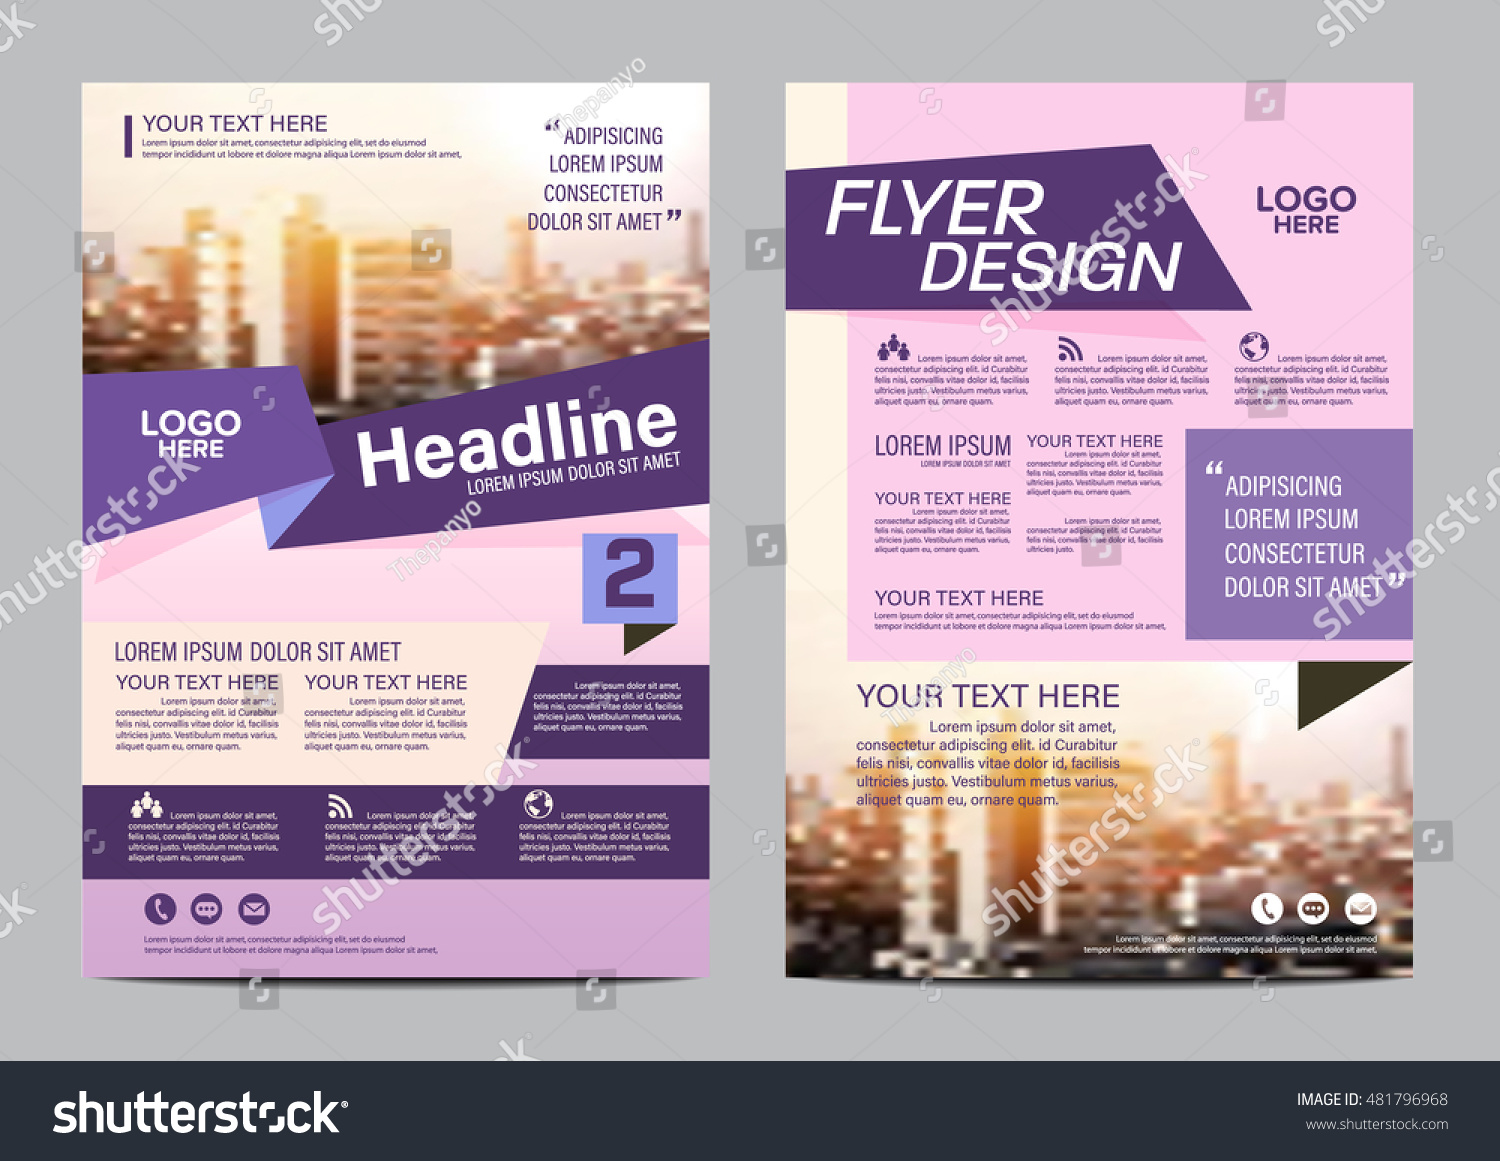 Free Printable Flyer Design Templates DesignMantic The